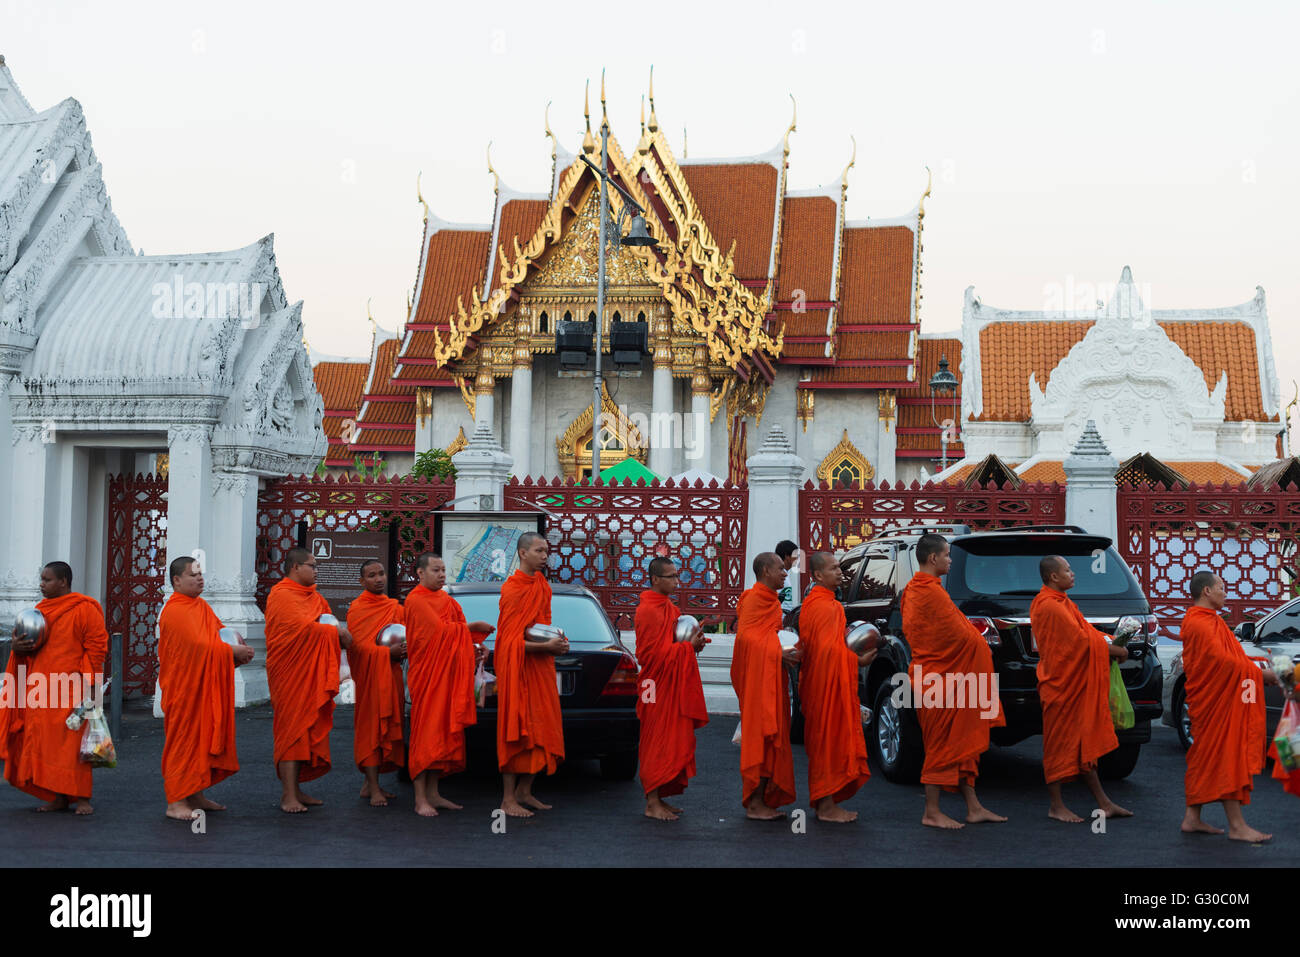 Monks collecting morning alms, The Marble Temple (Wat Benchamabophit), Bangkok, Thailand, Southeast Asia, Asia - Stock Image